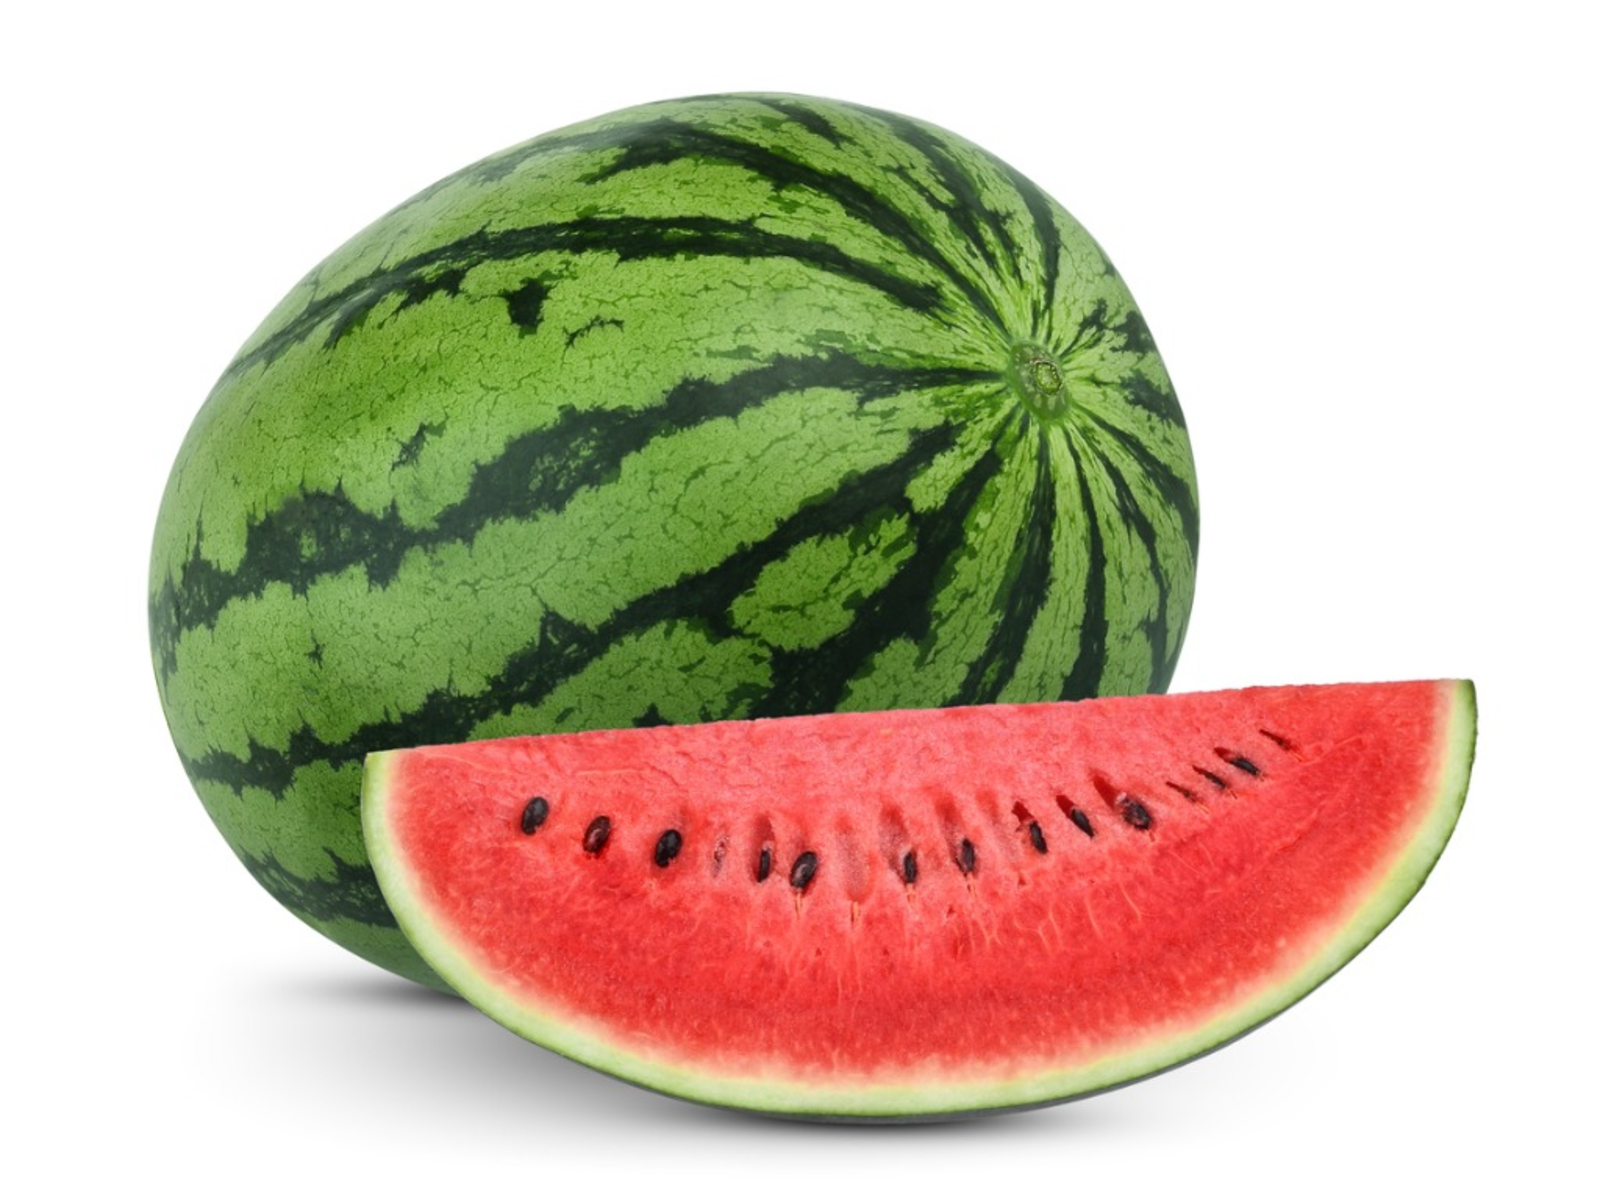 Harvesting Watermelons: The Right Time To Pick A Watermelon